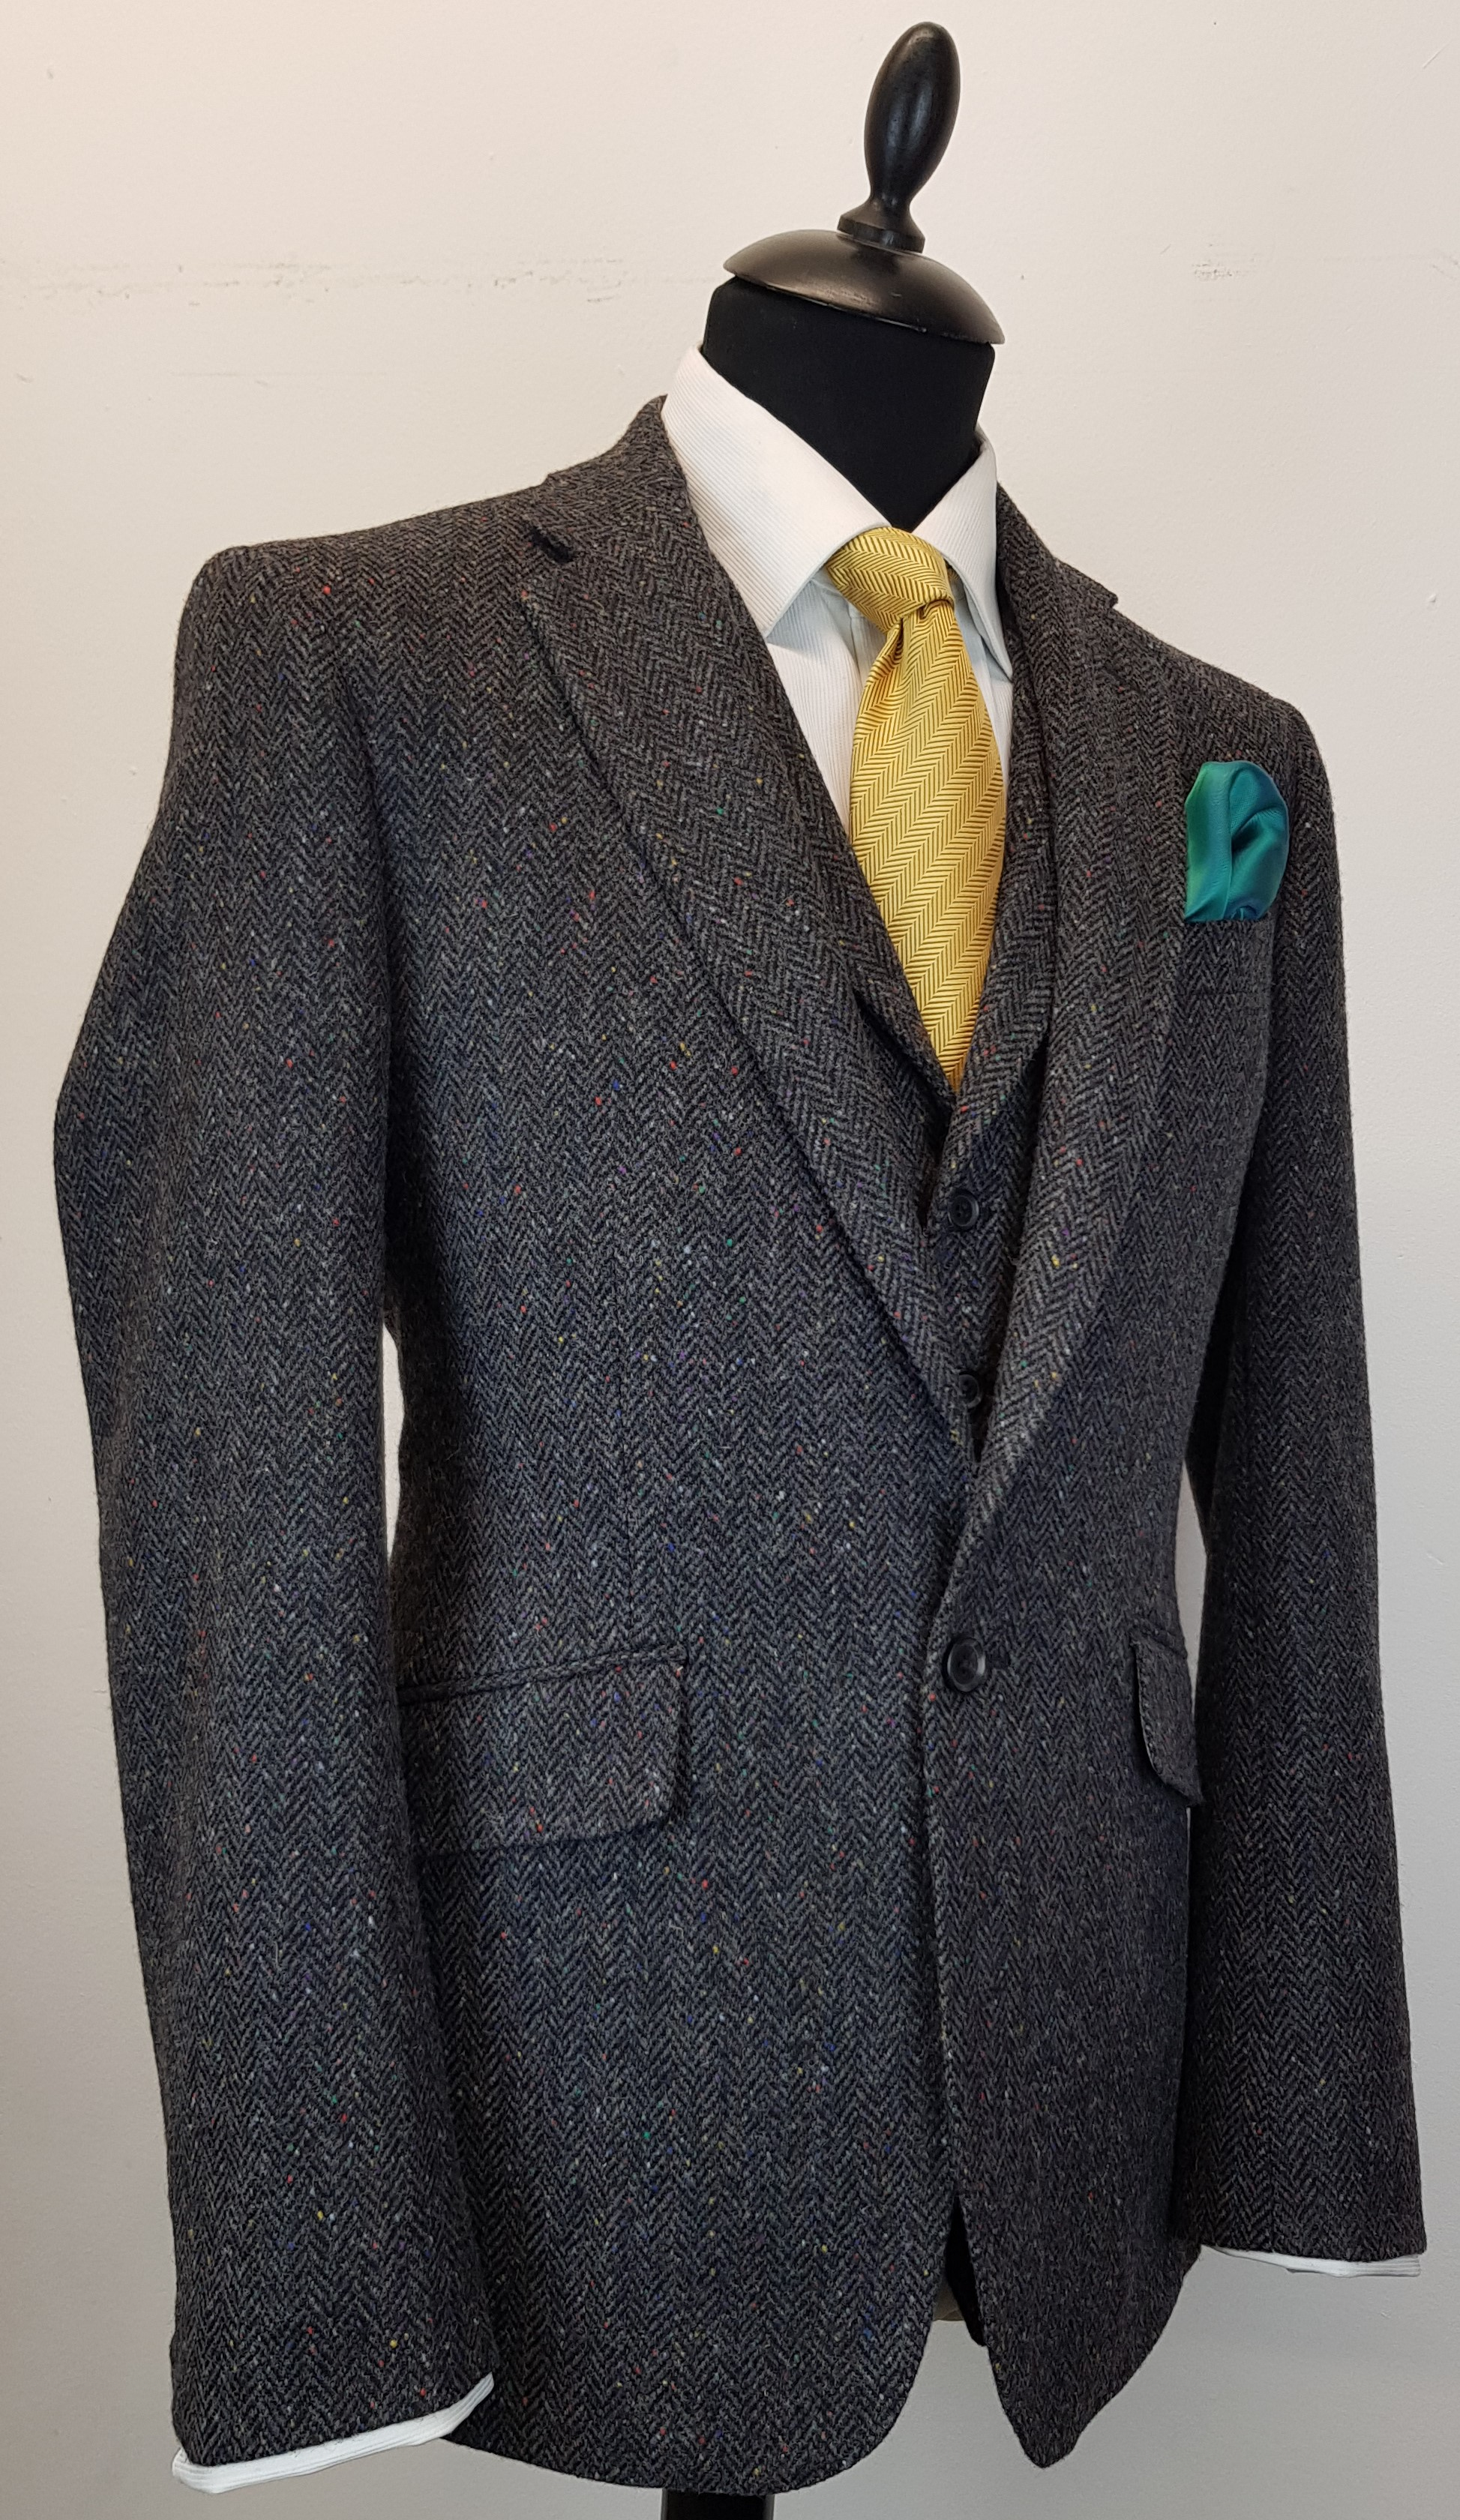 3 piece Donegal tweed suit (11).jpg